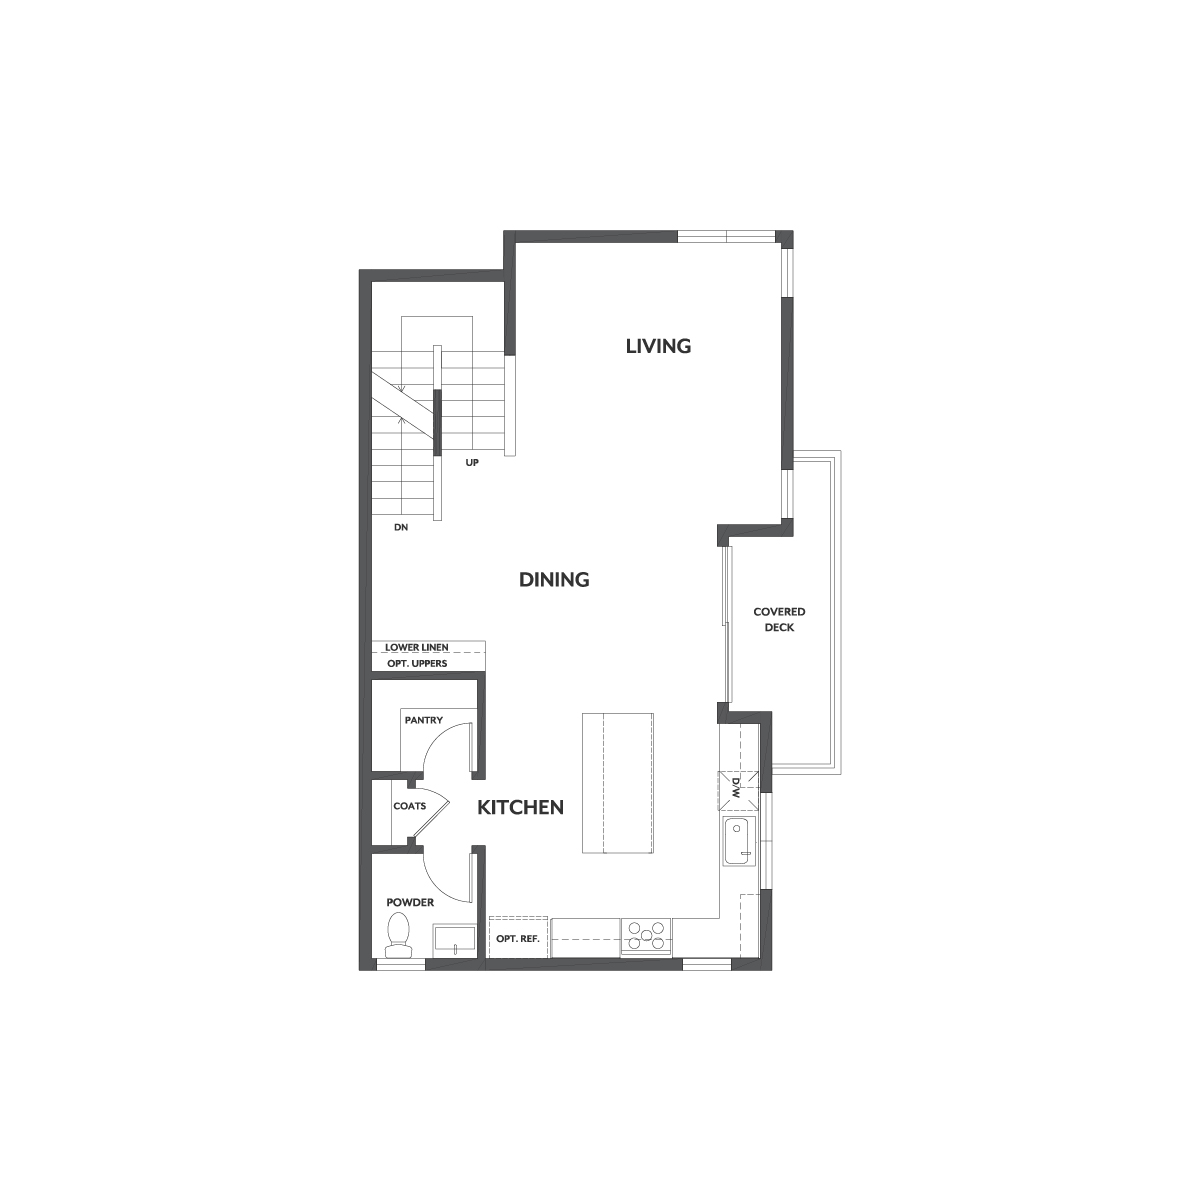 Residence 1 floor 2 plan | Wilshire at Boulevard in Dublin, CA | Brookfield Residential